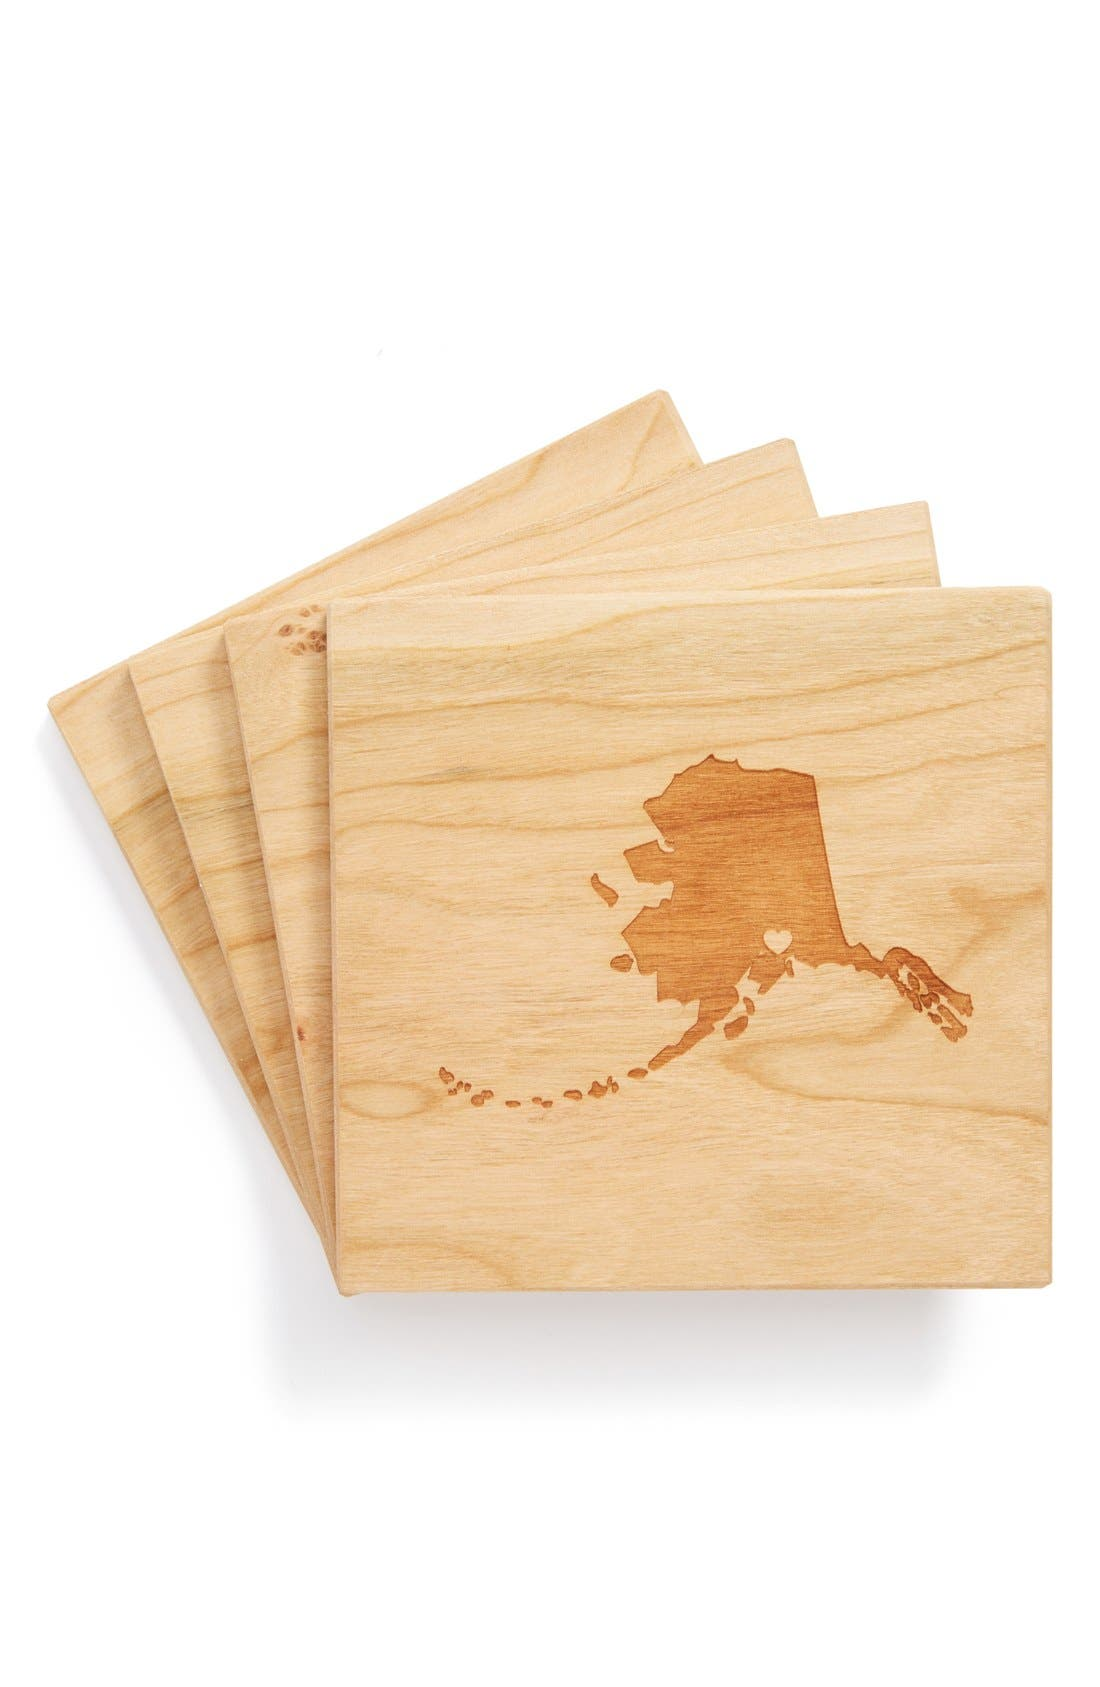 'State Silhouette' Coasters,                             Main thumbnail 23, color,